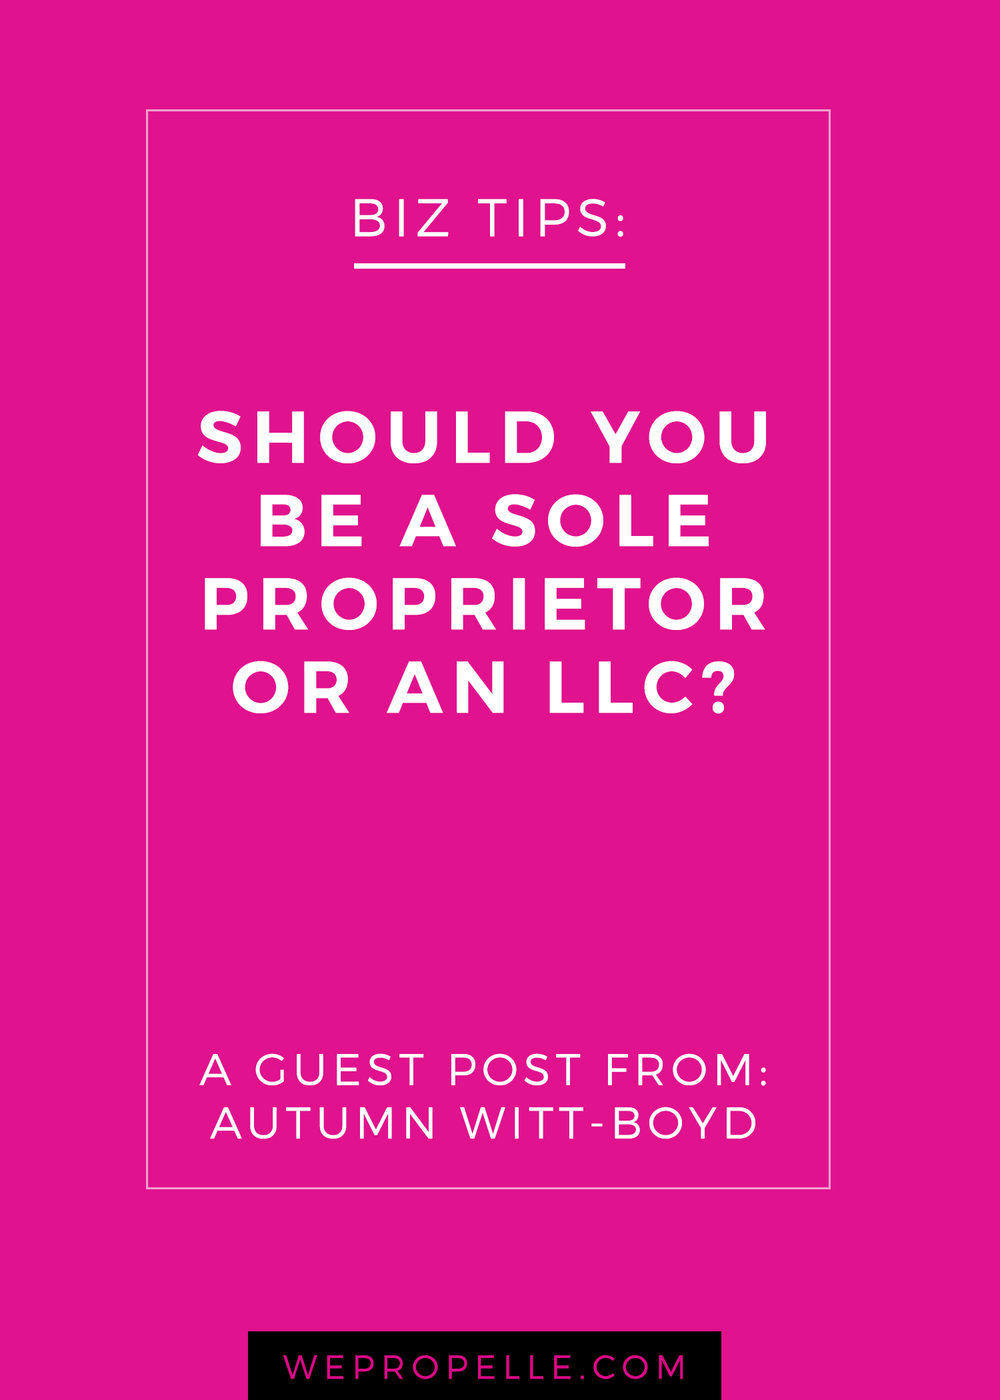 Just starting a business? Congrats! Now it's time to decide on the kind of business structure you need. This guest post from Autumn Witt-Boyd is a great primer on the liability and tax implications of the different business structures: sole proprietorship, llc, and s-corp. | wepropelle.com